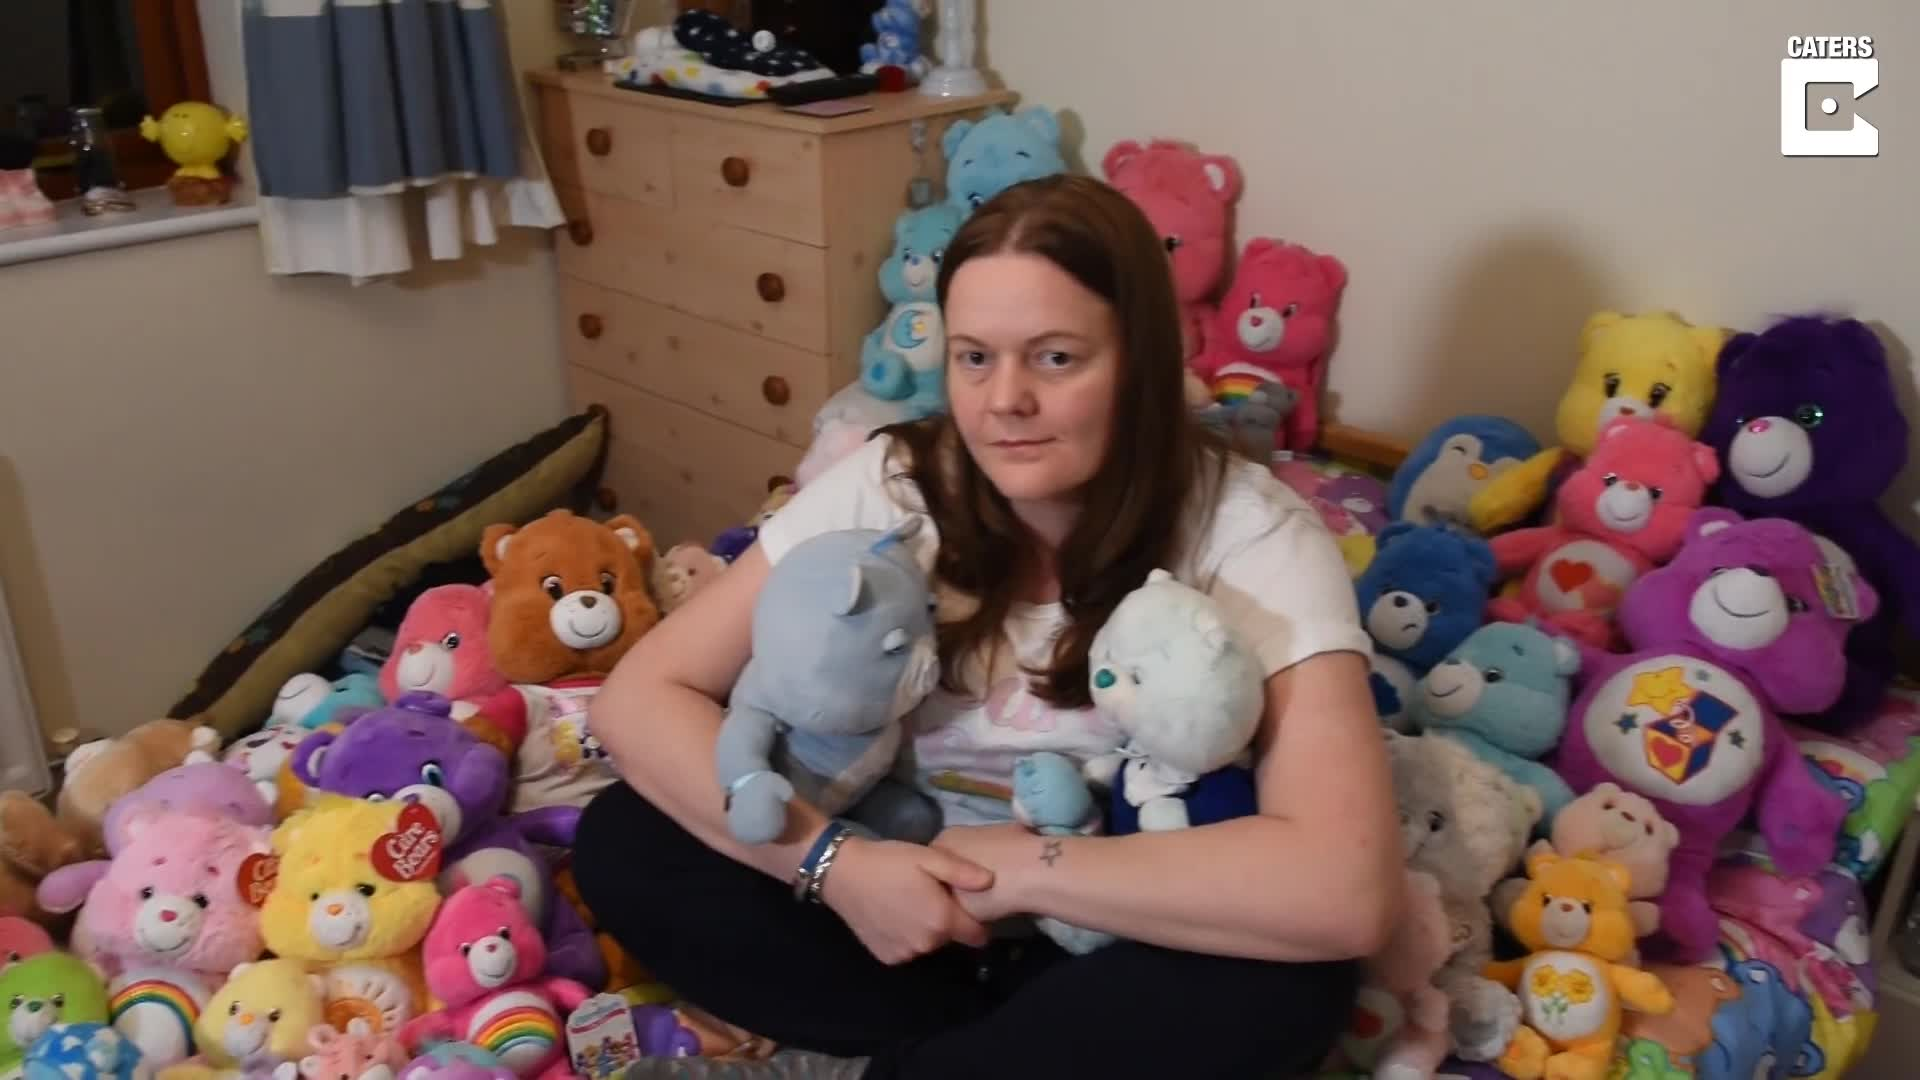 WOMAN OBSESSED WITH CARE BEARS SINCE THIRD BIRTHDAY TAKES TOYS WITH HER EVERYWHERE